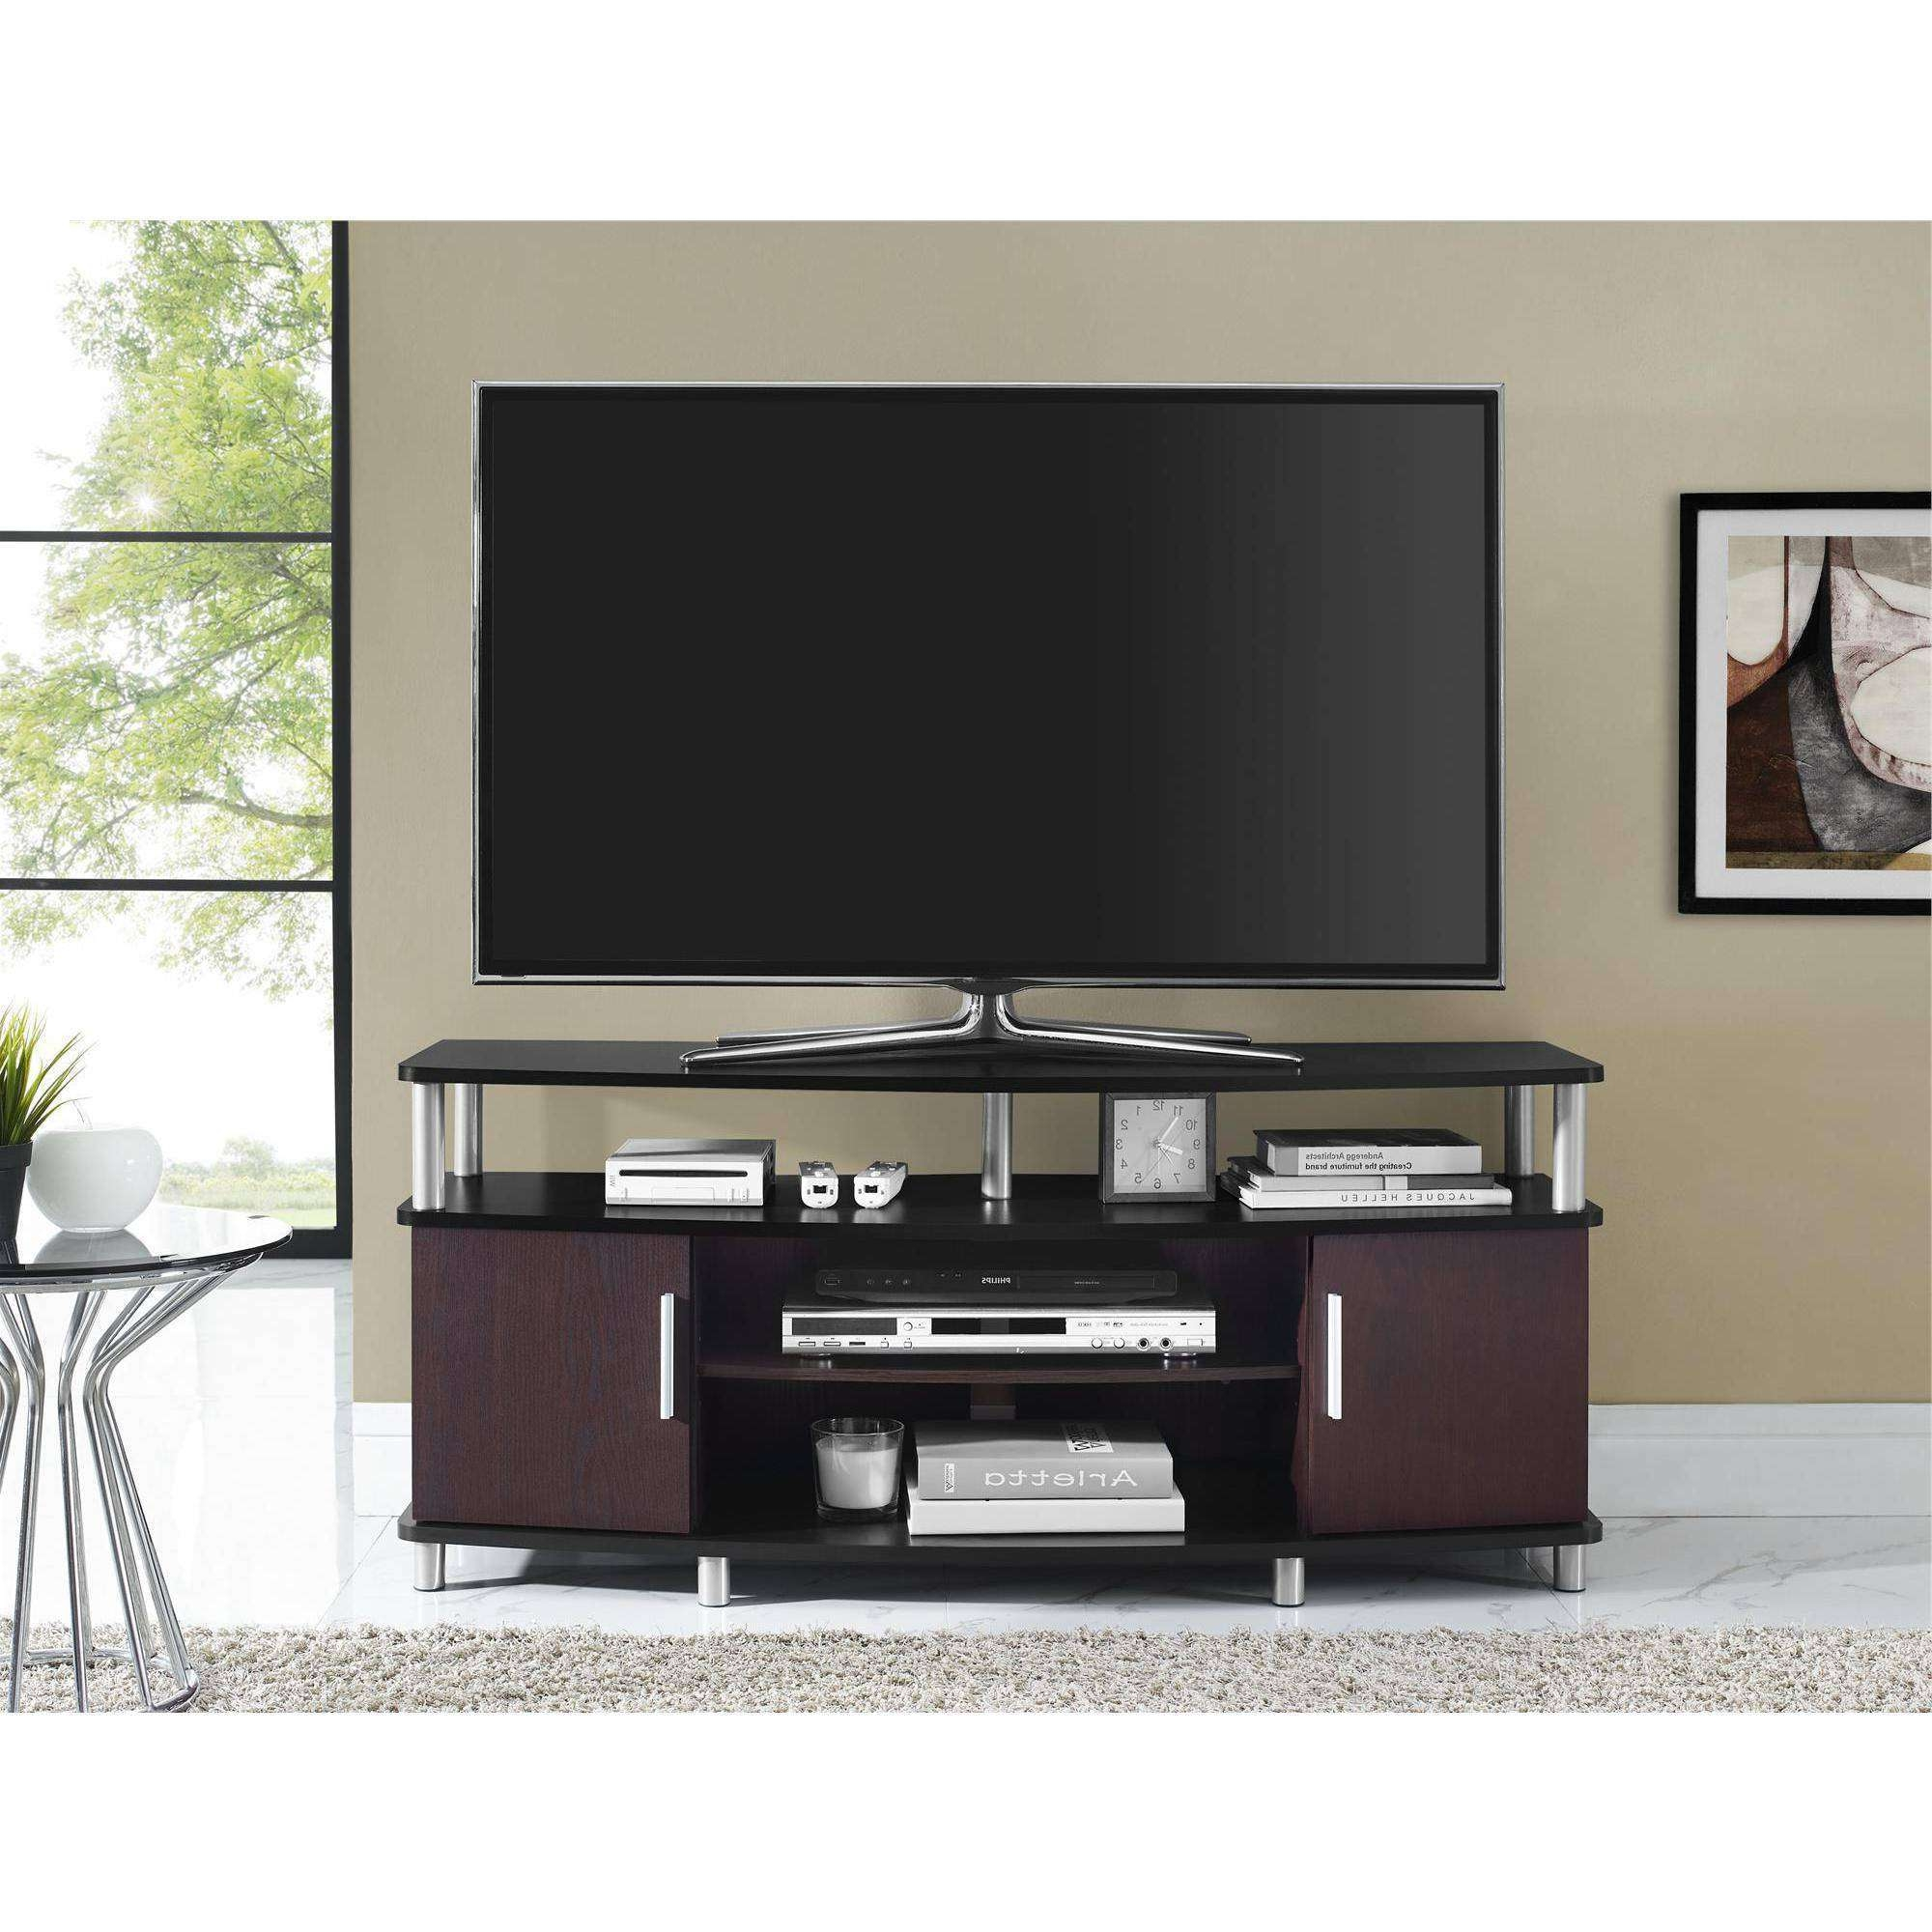 Flat Screen Tv Stands With Mount Furnitures Modern For Inch Throughout Modern Tv Stands With Mount (View 9 of 15)